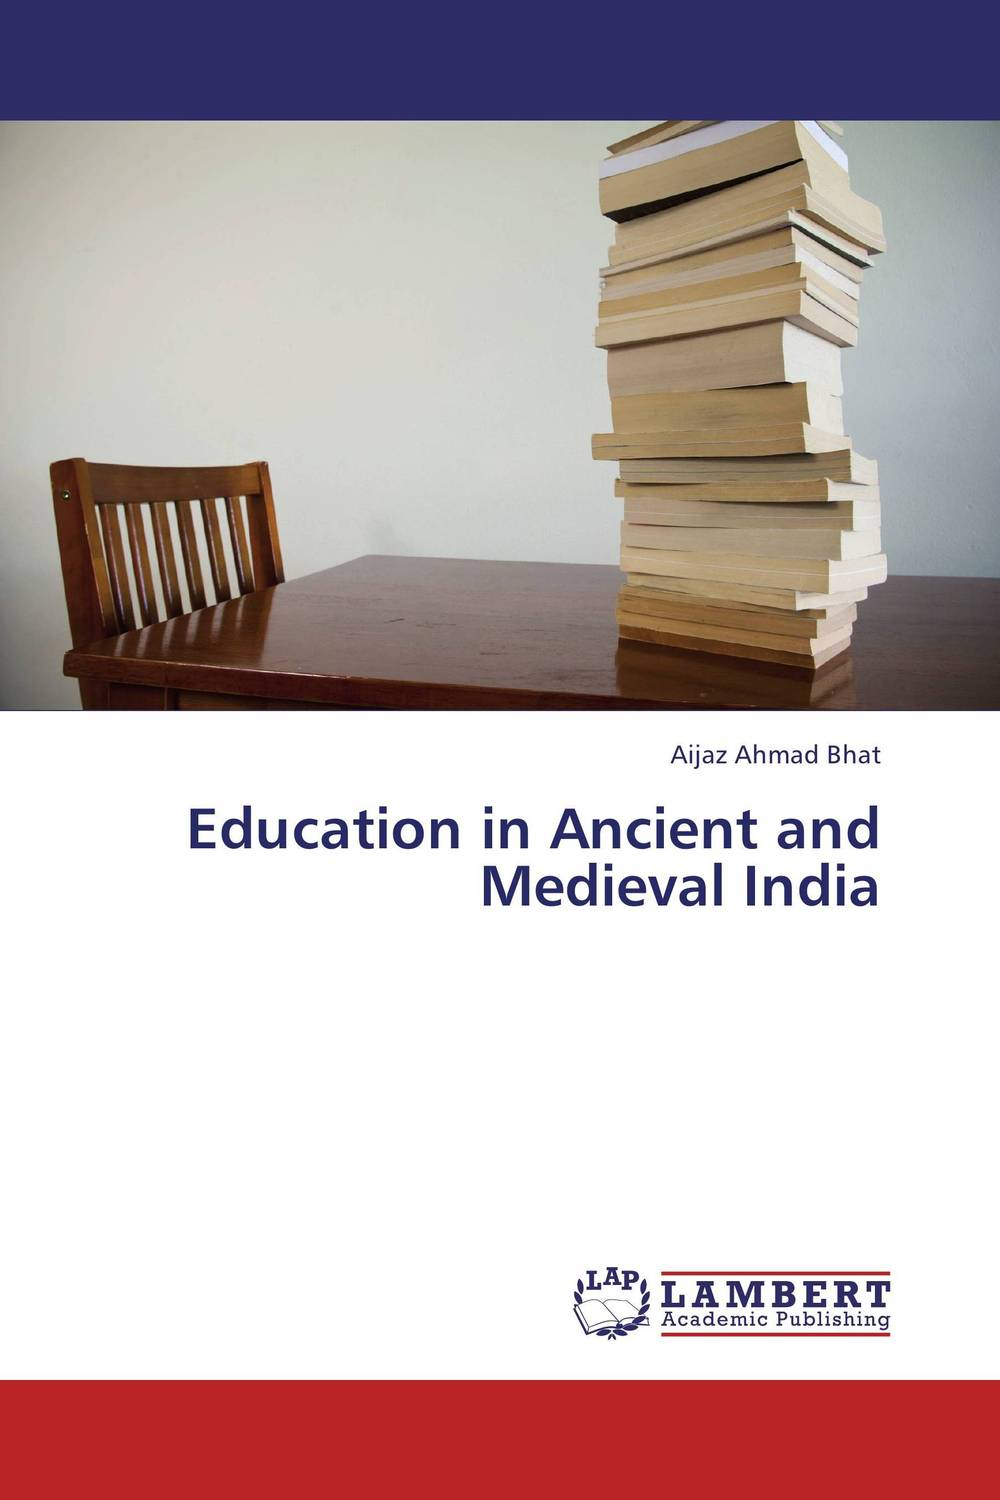 Education in Ancient and Medieval India psychiatric disorders in postpartum period